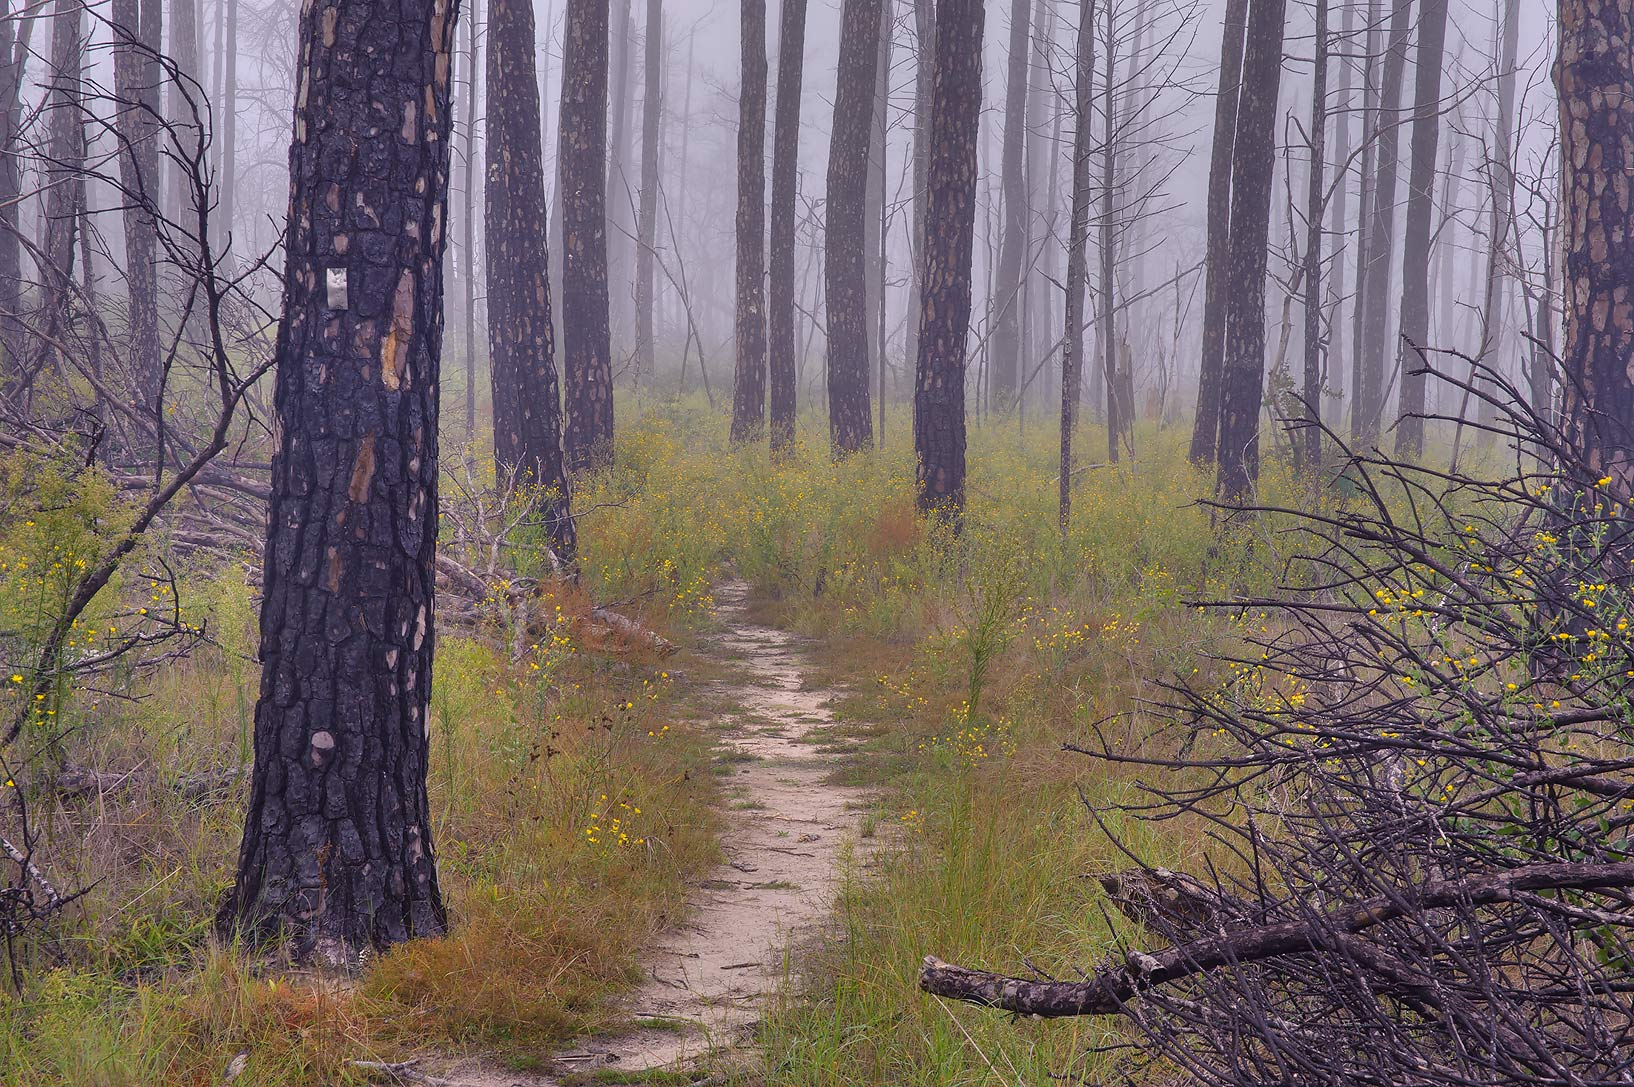 Forest in fog near south end of Roosevelt Cutoff...in Bastrop State Park. Bastrop, Texas